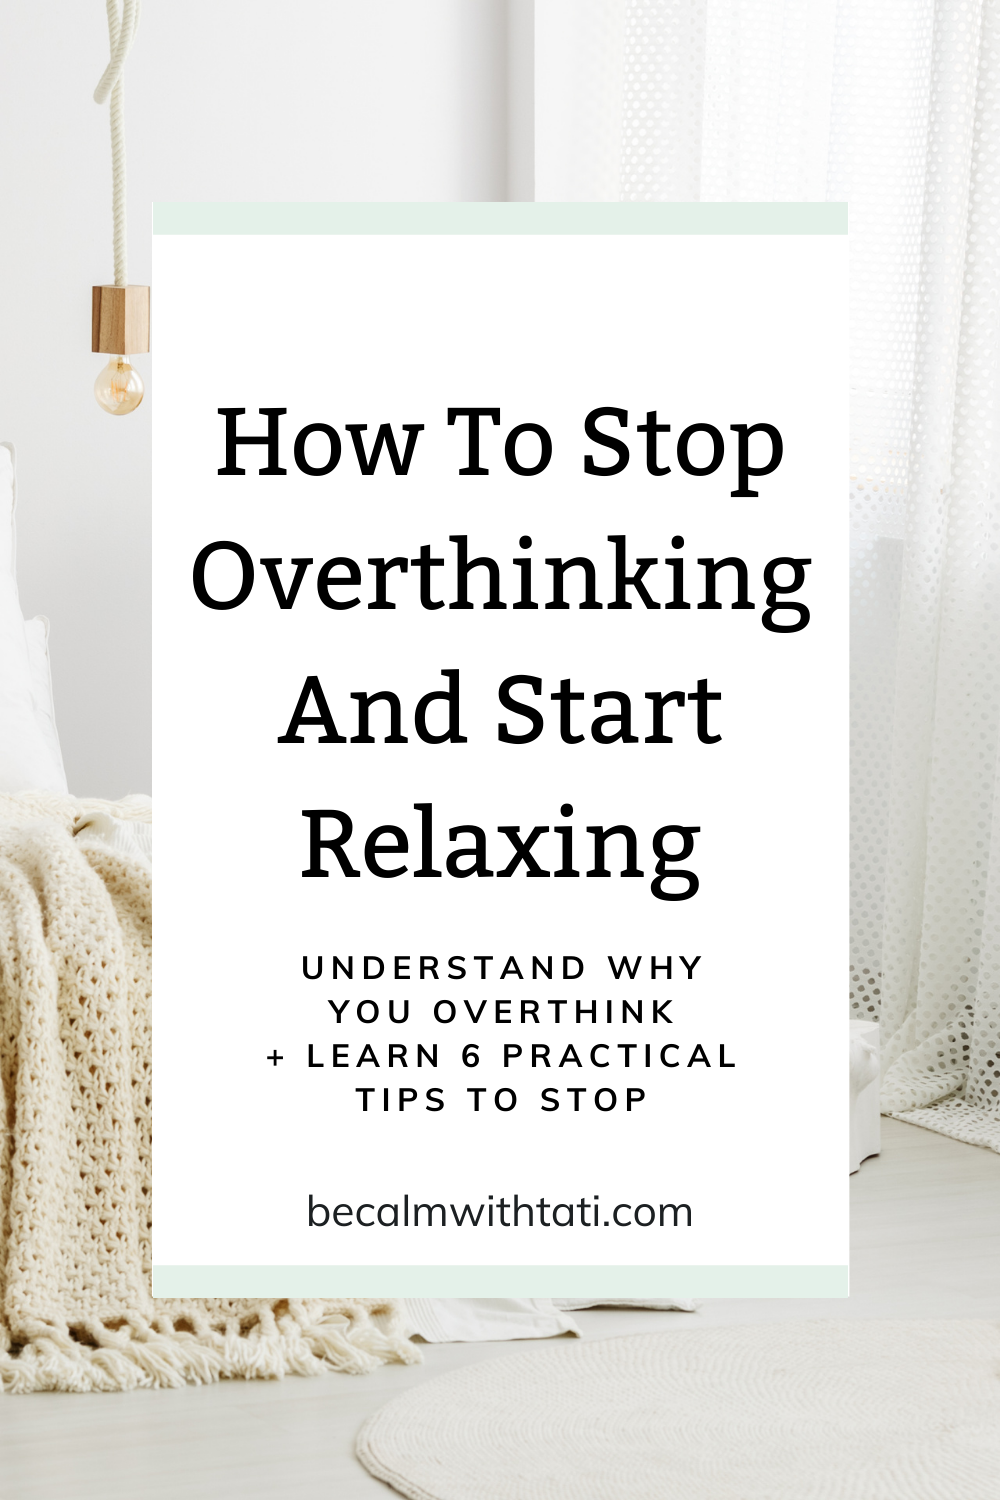 How To Stop Overthinking And Start Relaxing